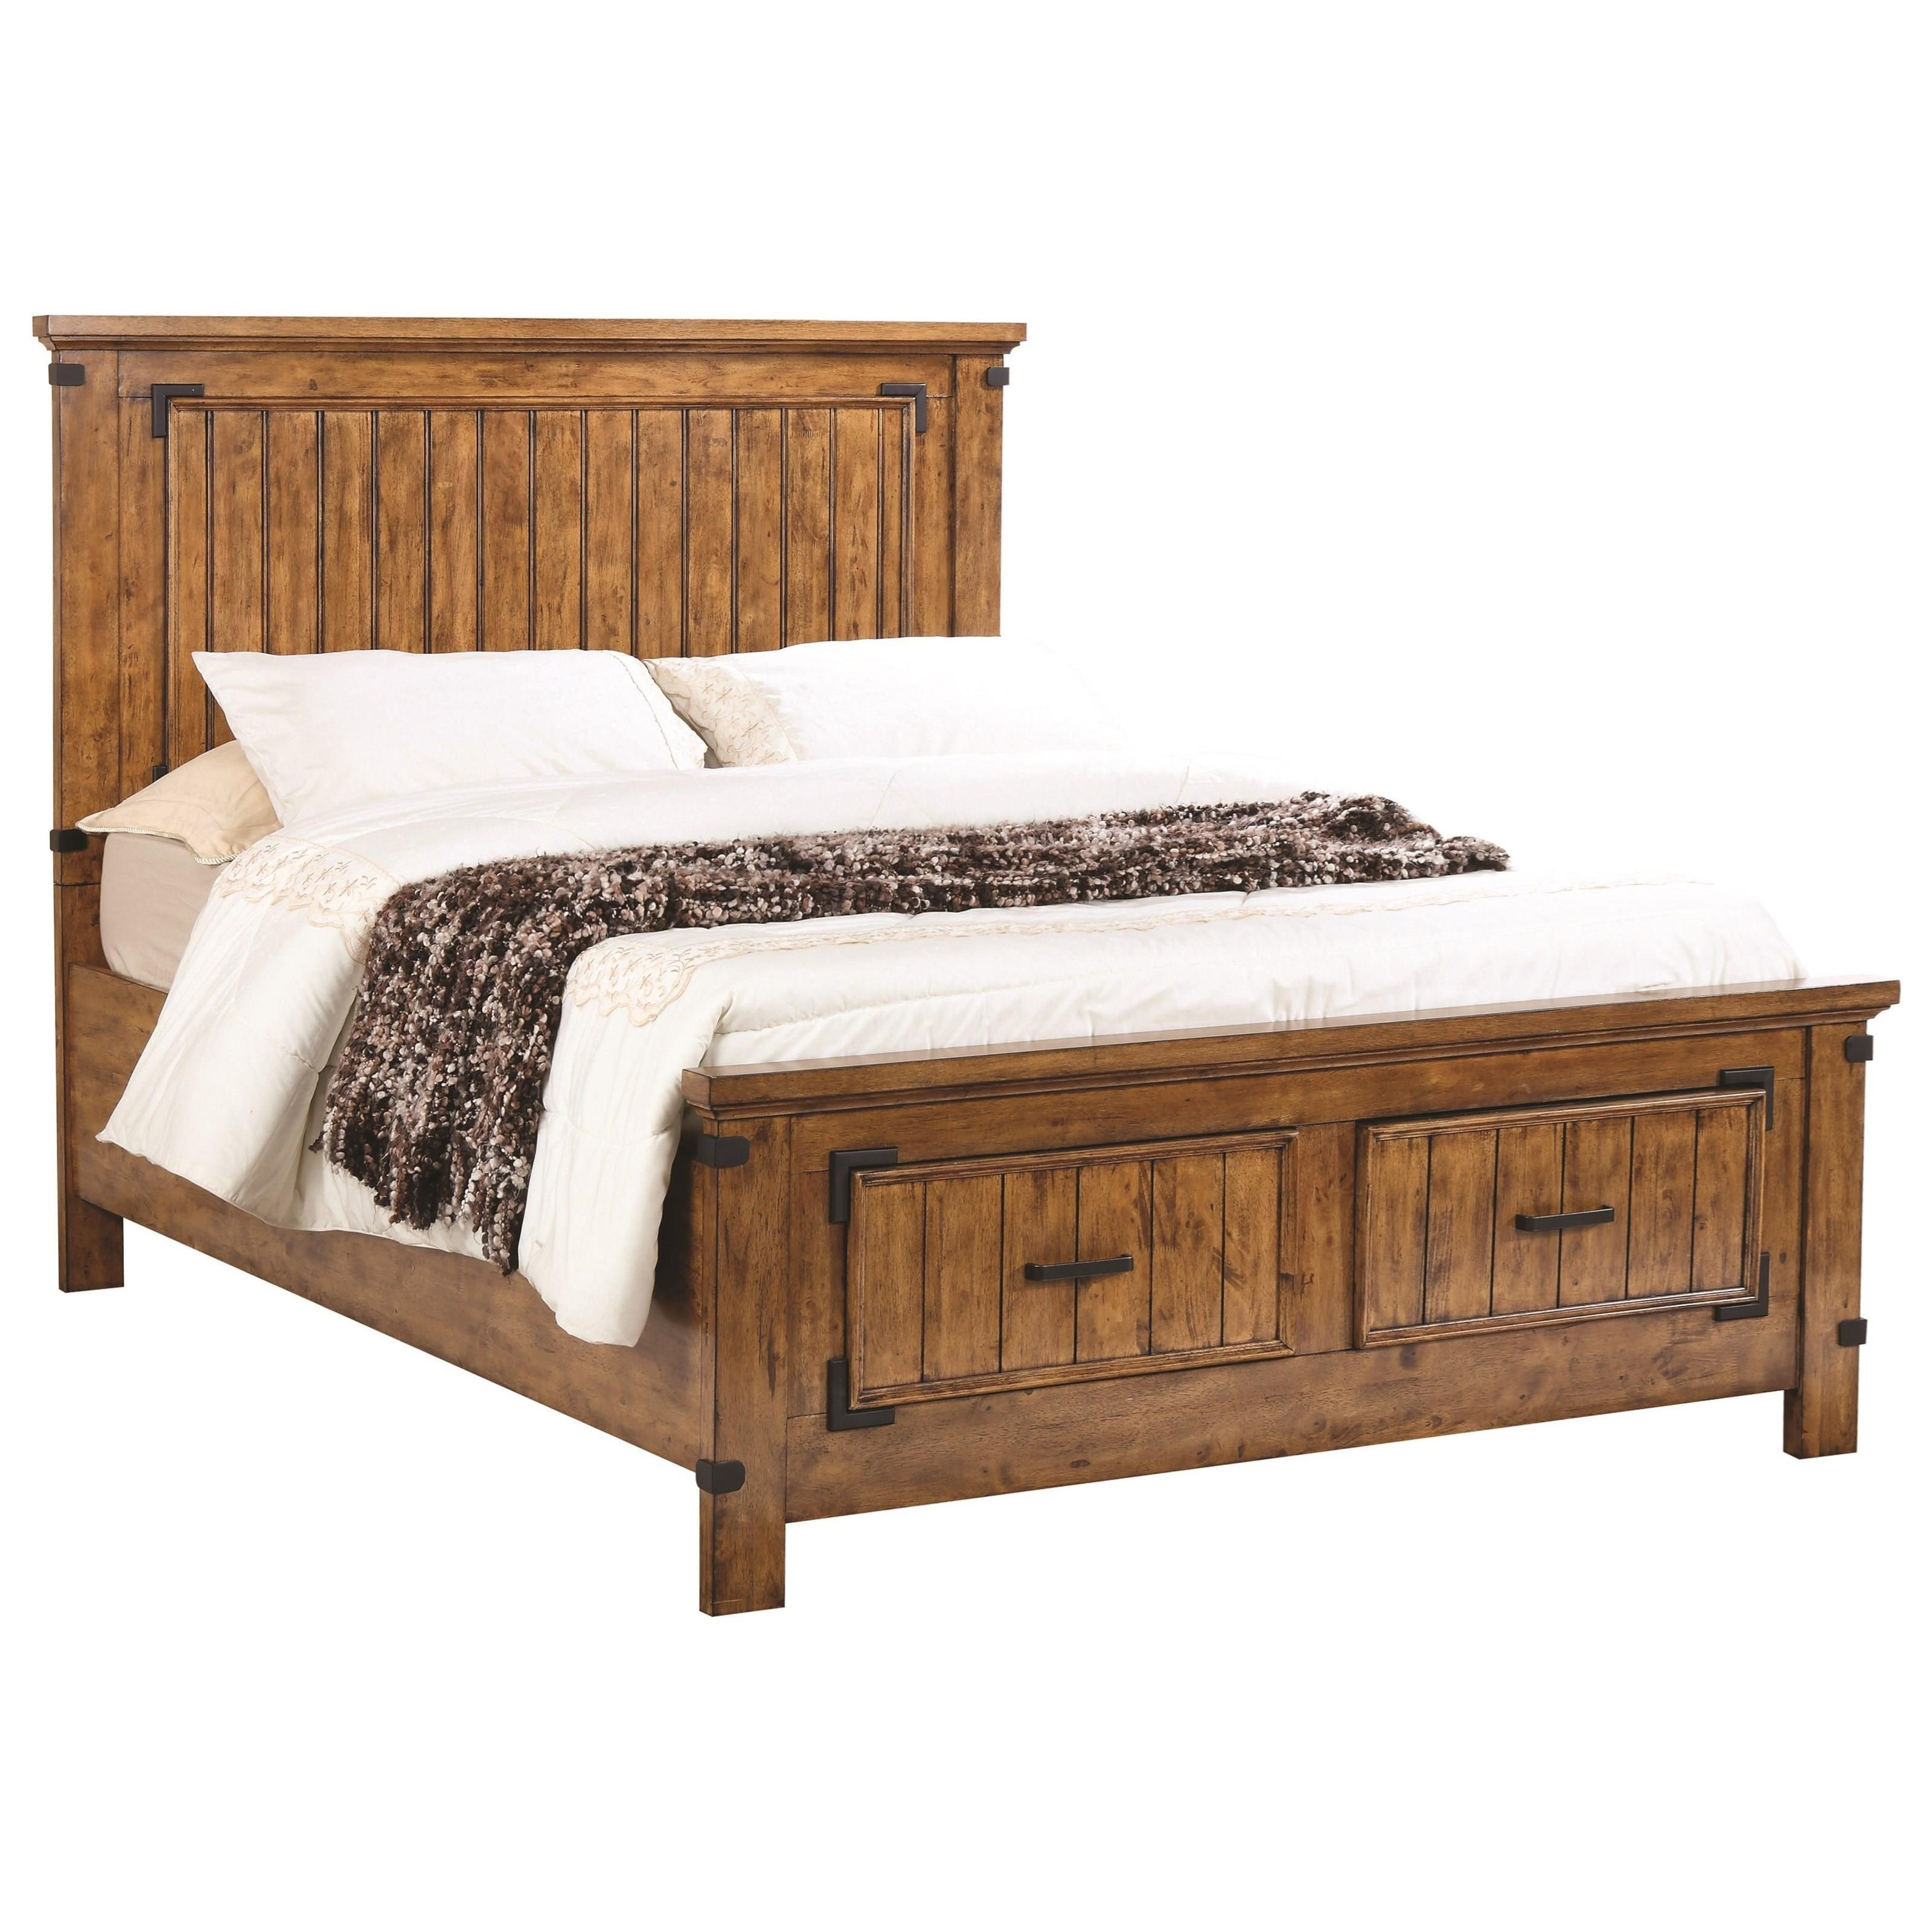 Coaster brenner 205260kw california king storage bed with dovetail drawers dunk bright - Cal king bed with drawers ...